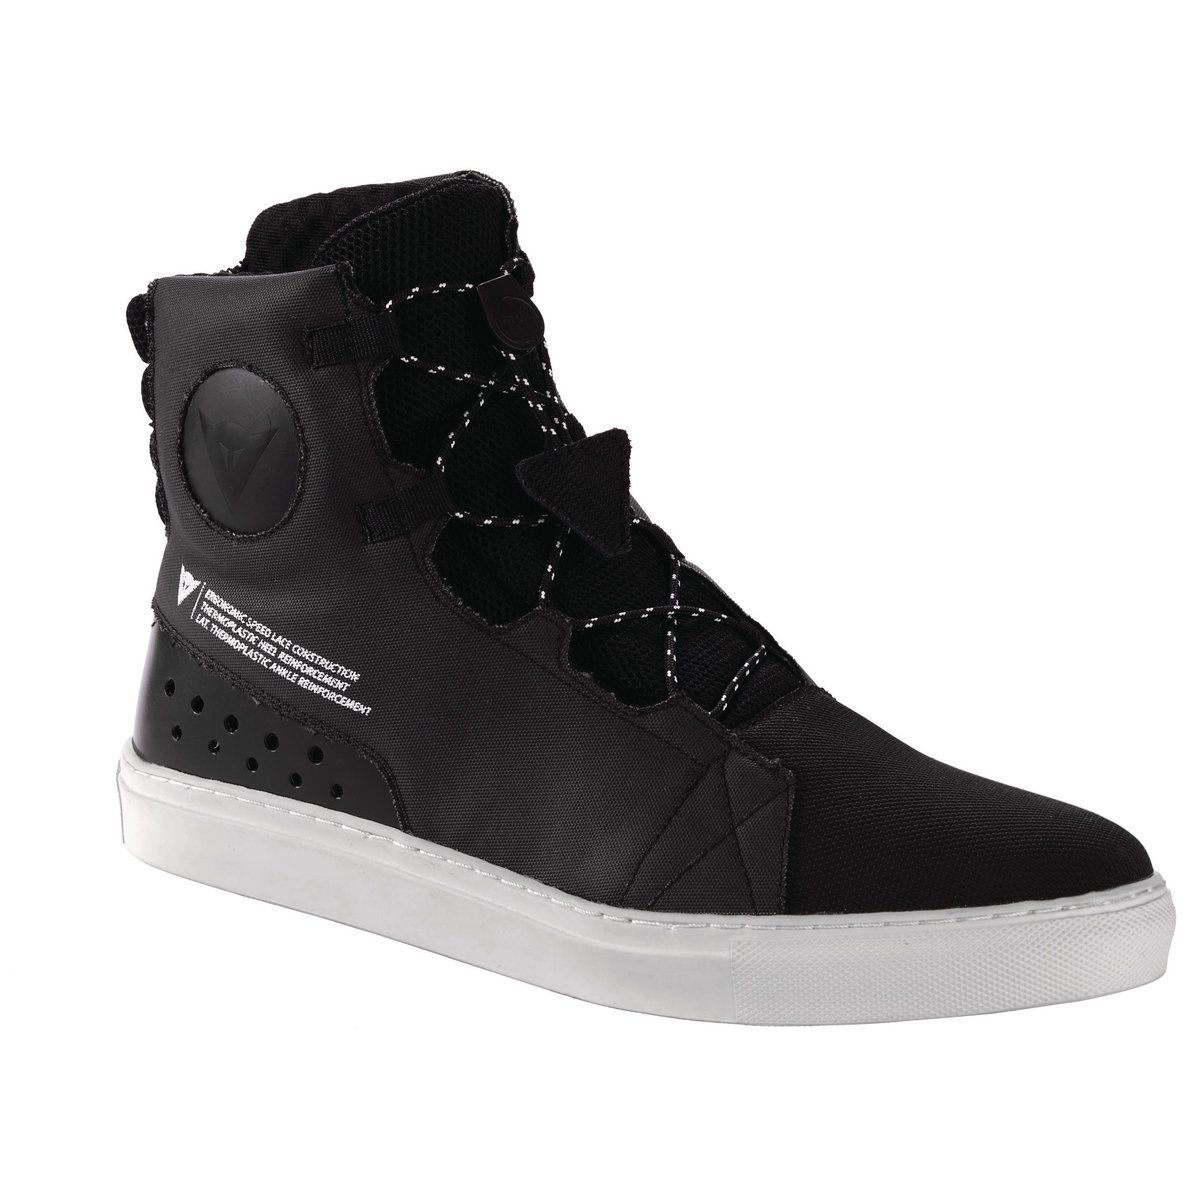 Dainese Technical Sneaker Motorcycle boots